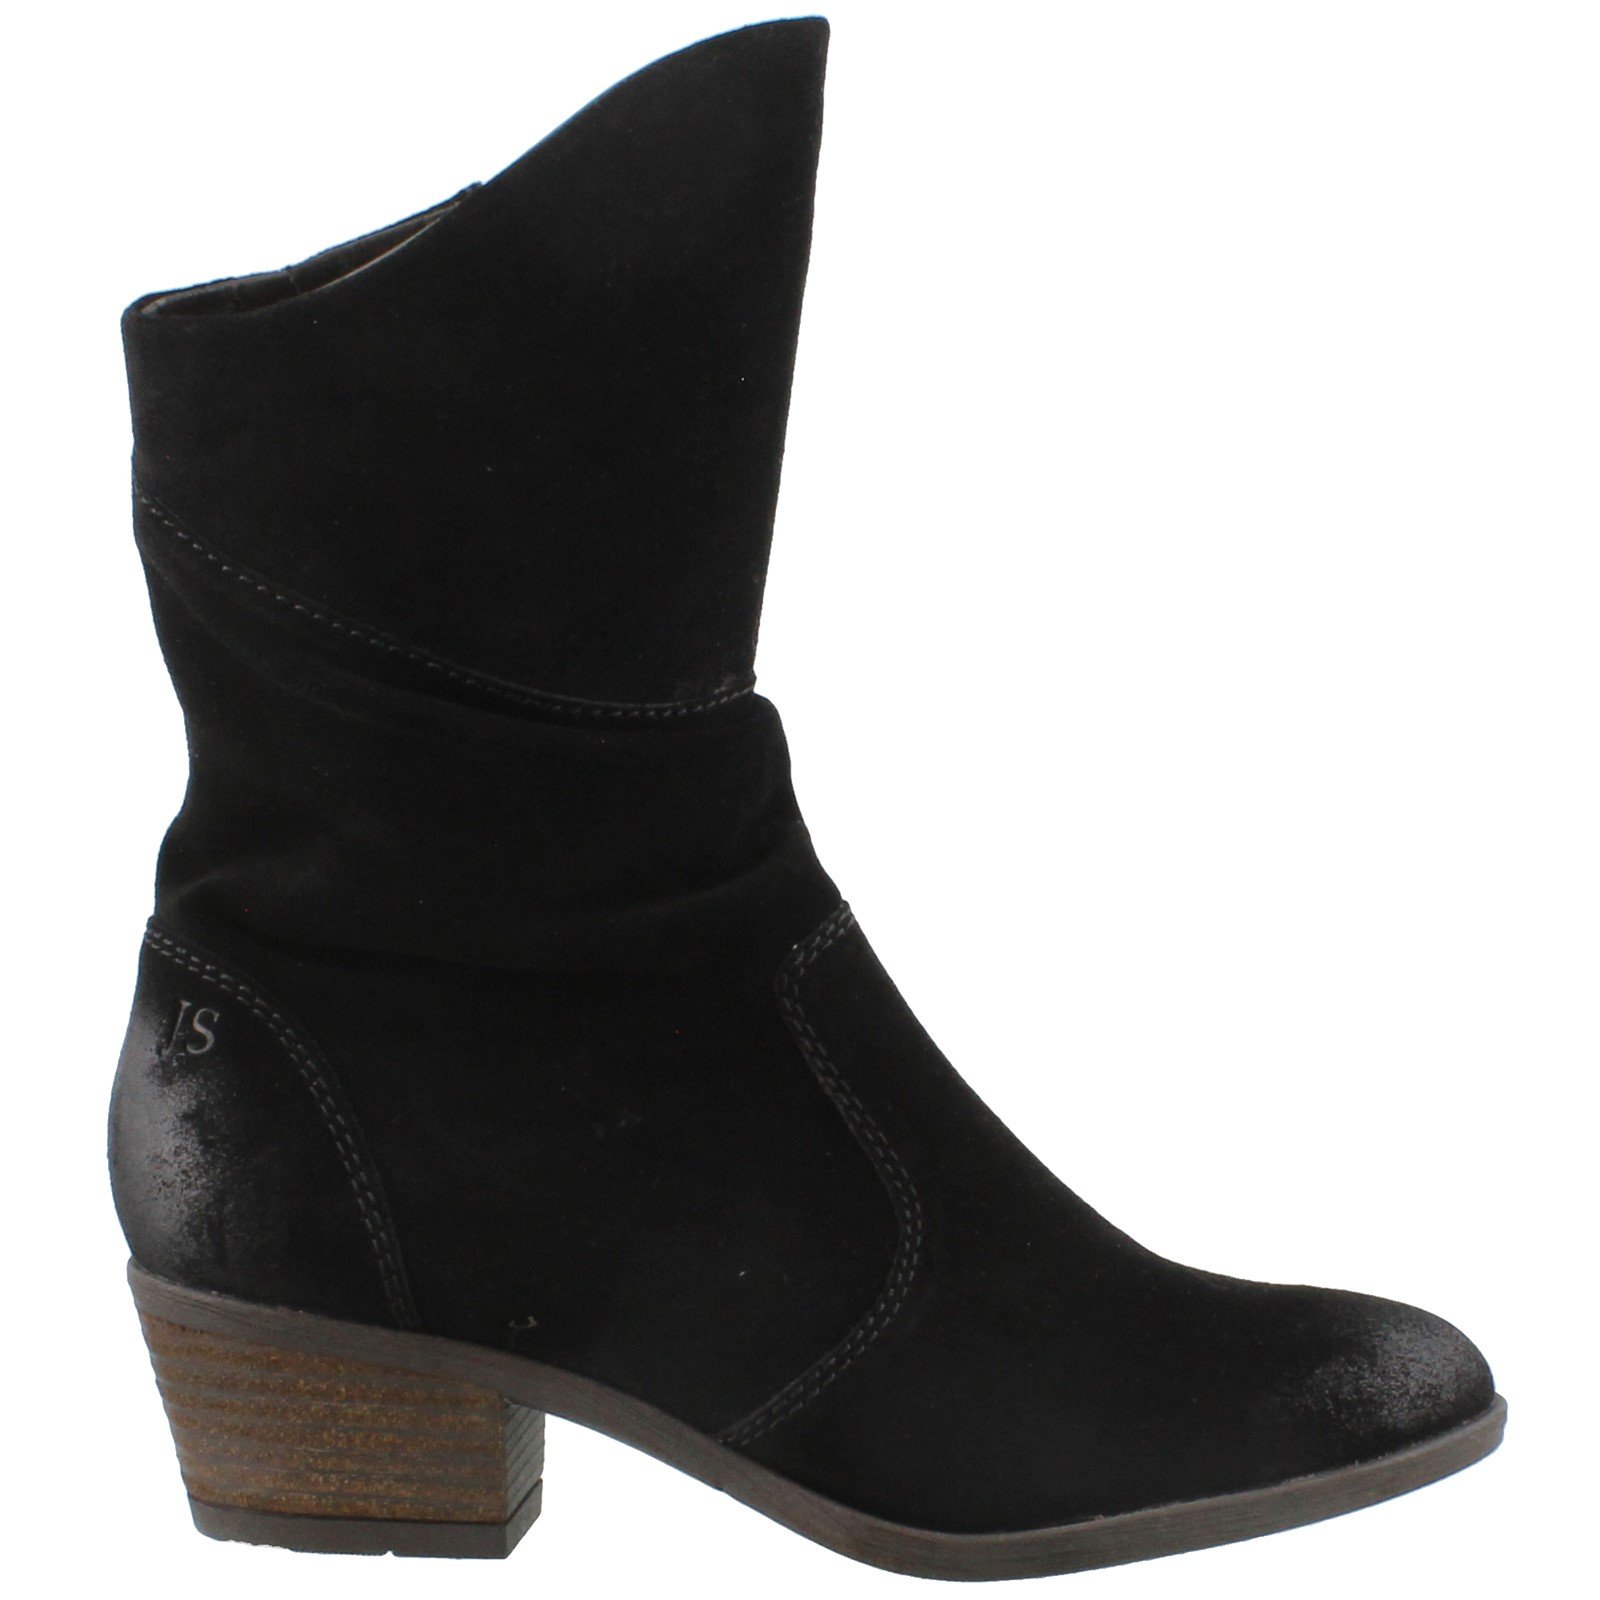 Women's Josef Seibel, Daphne 37 Boot